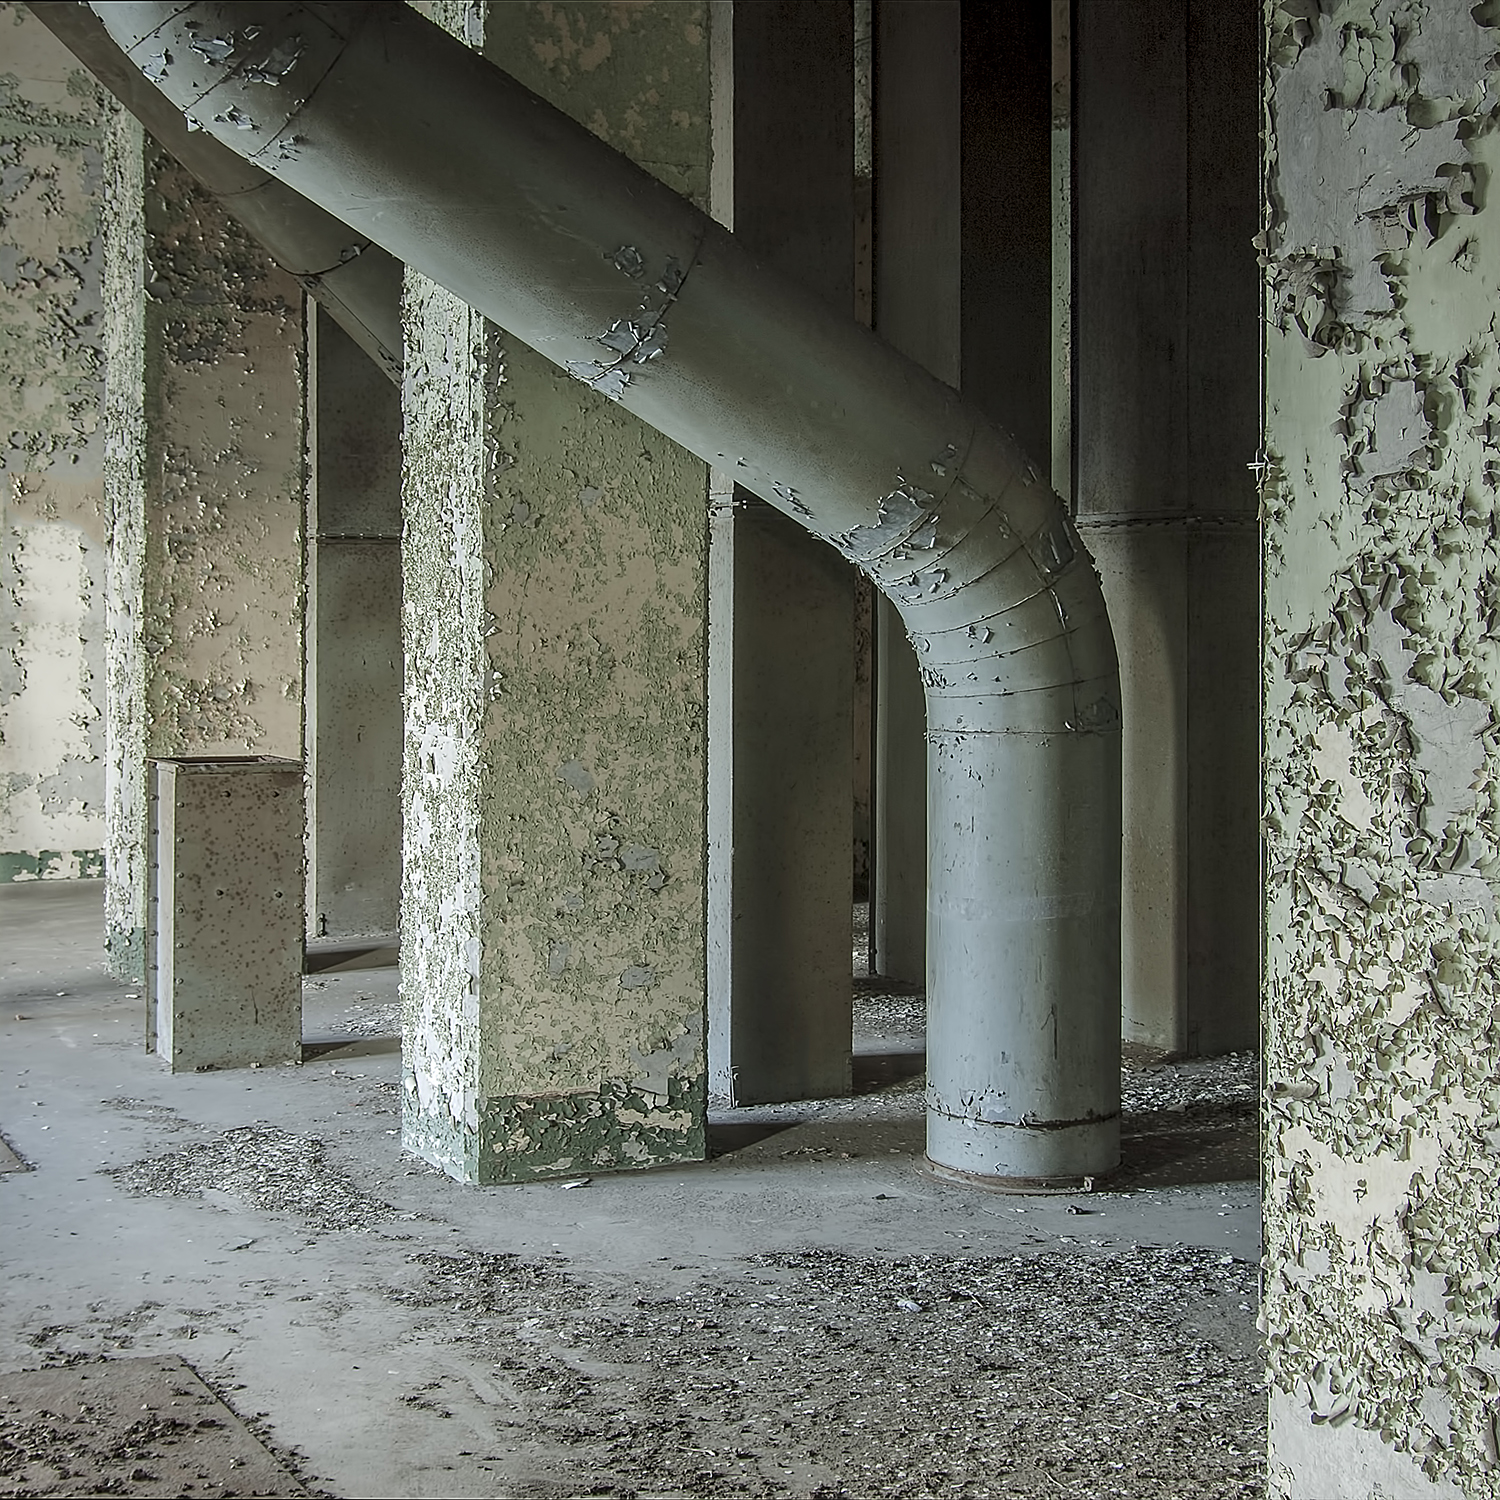 Pipes and Peeling Paint by Interior photographer Nicholas Adams